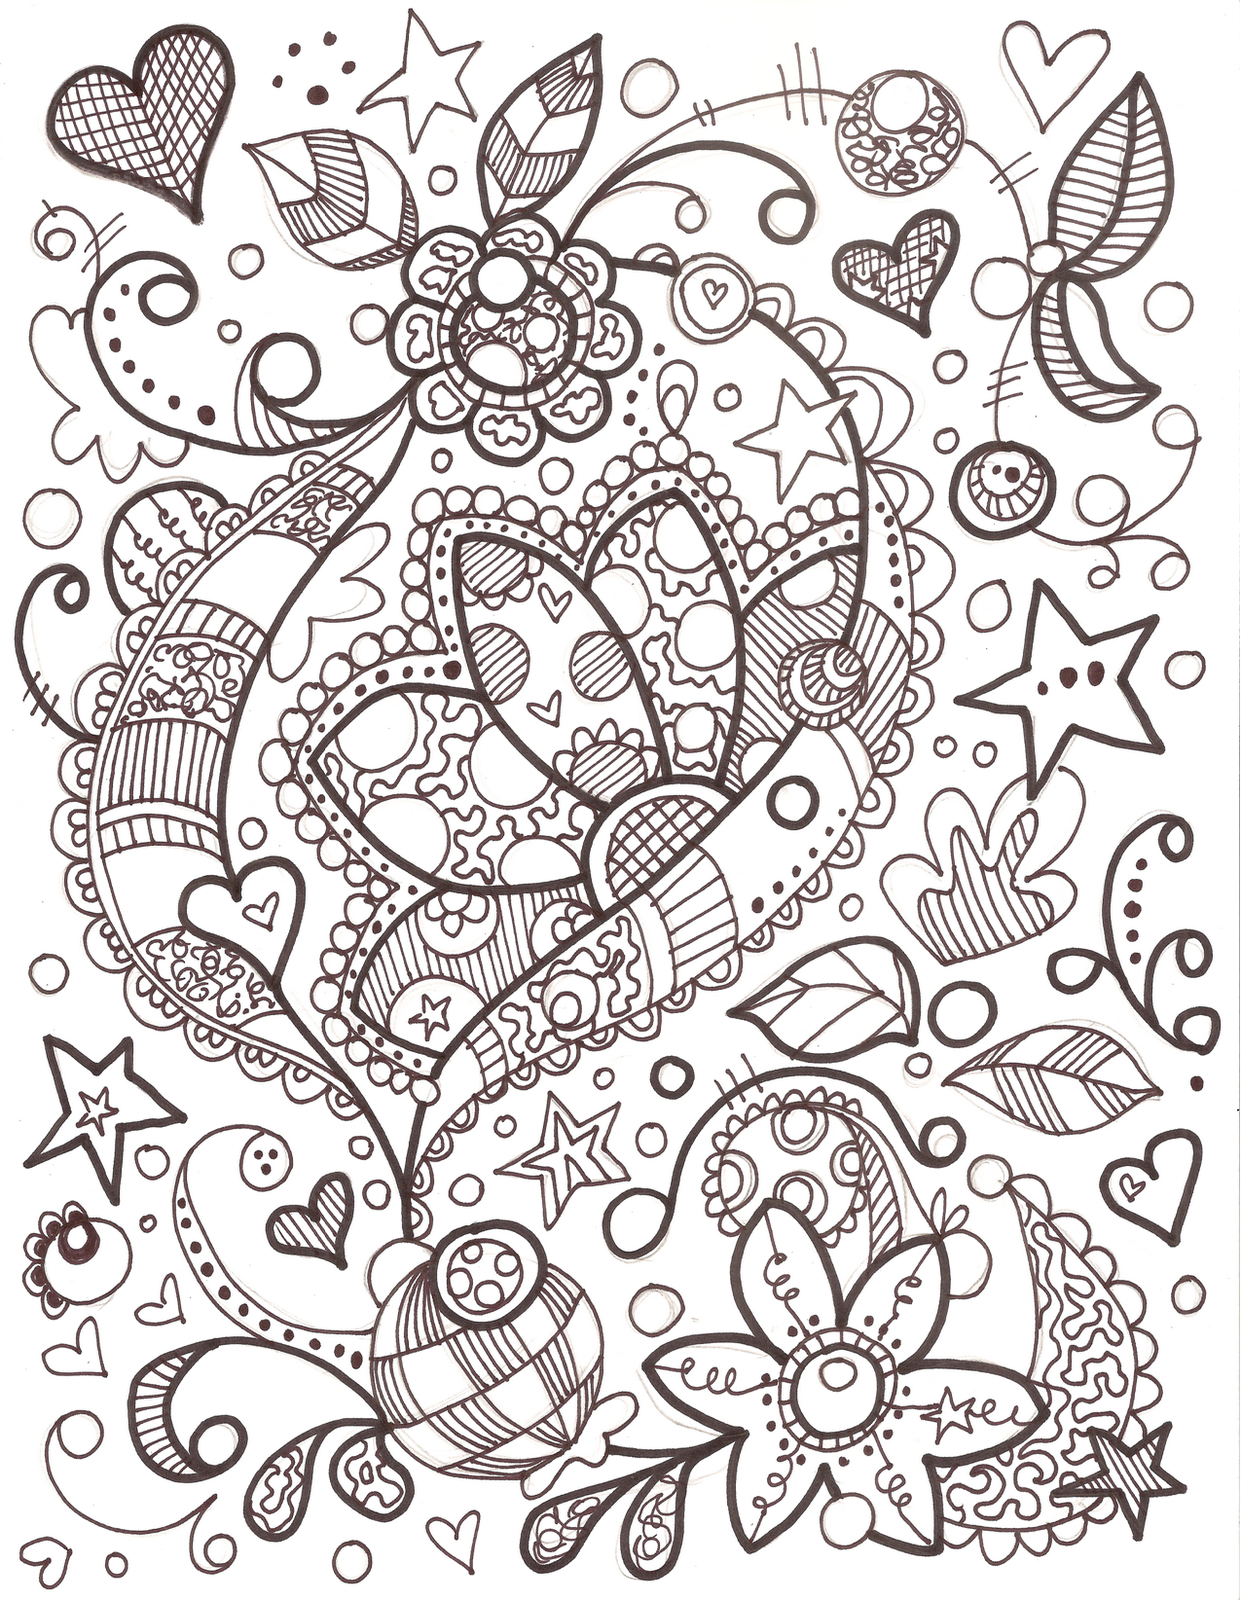 Girly Doodle Colouring Pages Pinterest